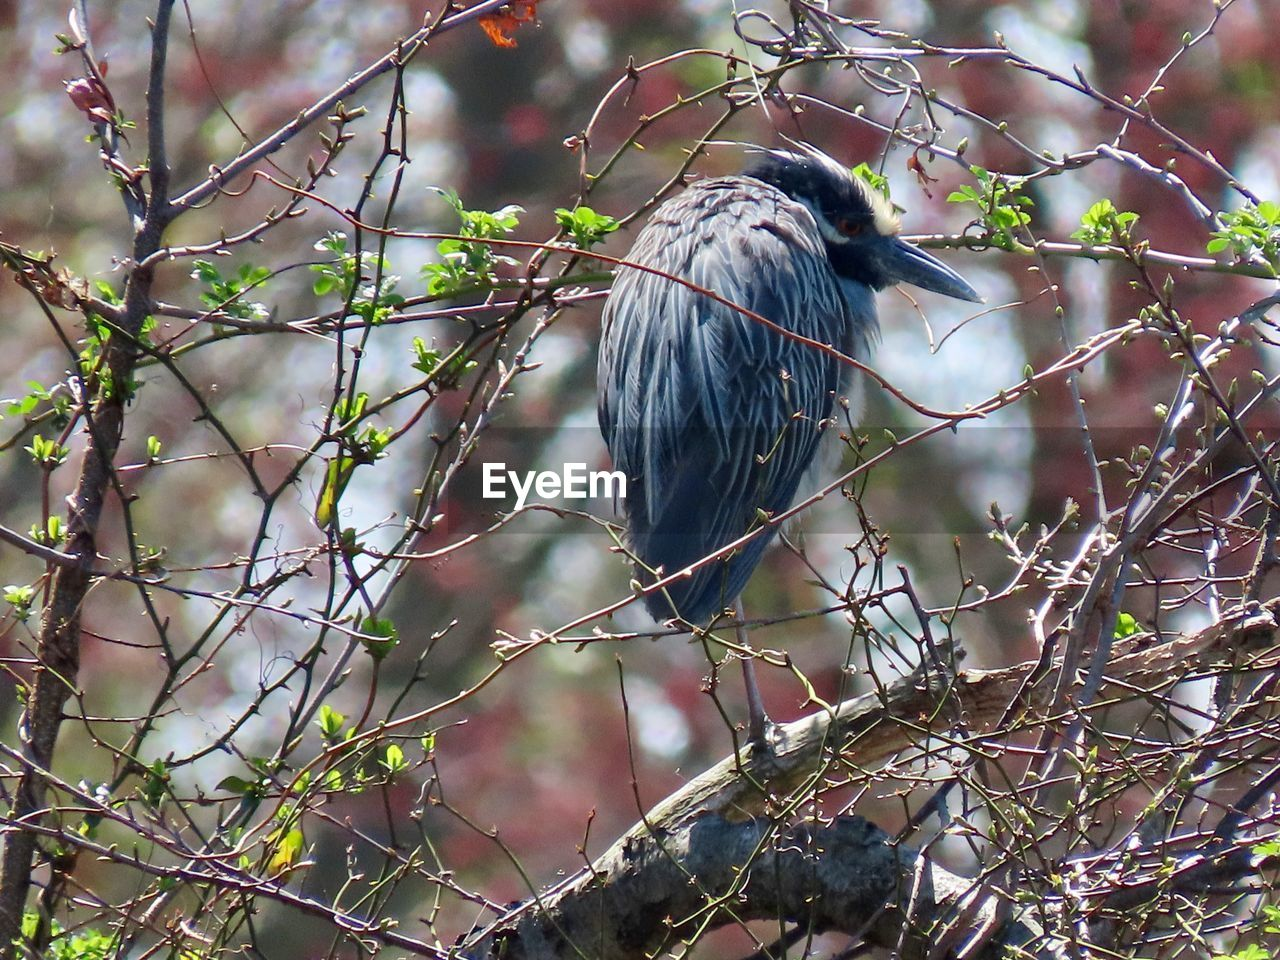 animal wildlife, vertebrate, bird, animals in the wild, animal, animal themes, one animal, tree, branch, perching, plant, no people, day, focus on foreground, nature, outdoors, selective focus, bare tree, twig, low angle view